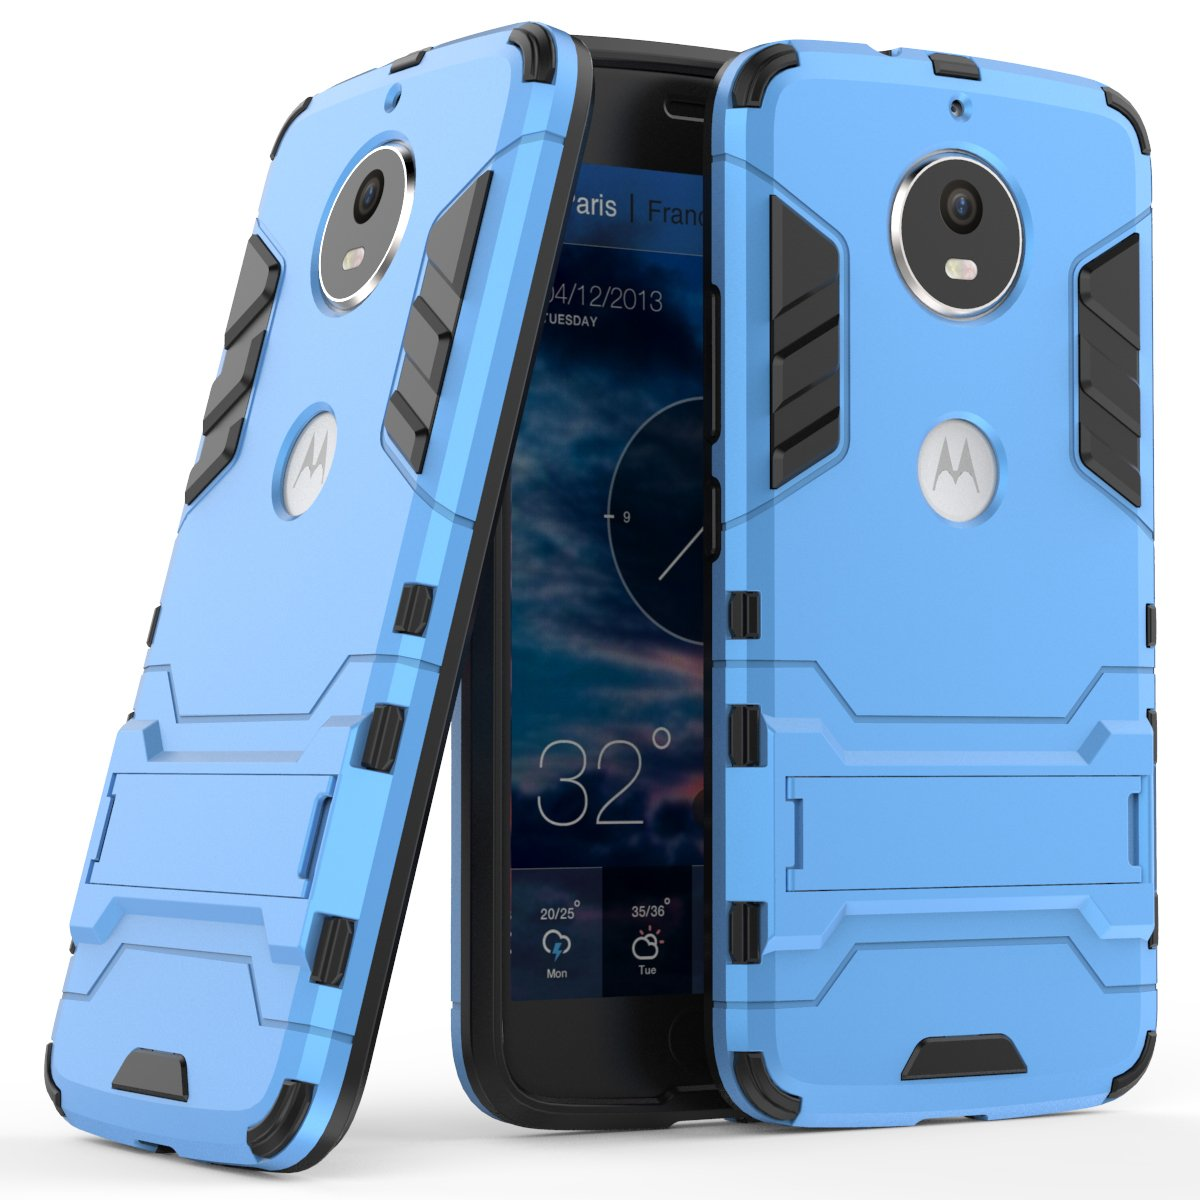 To acquire Stylish g moto cases picture trends